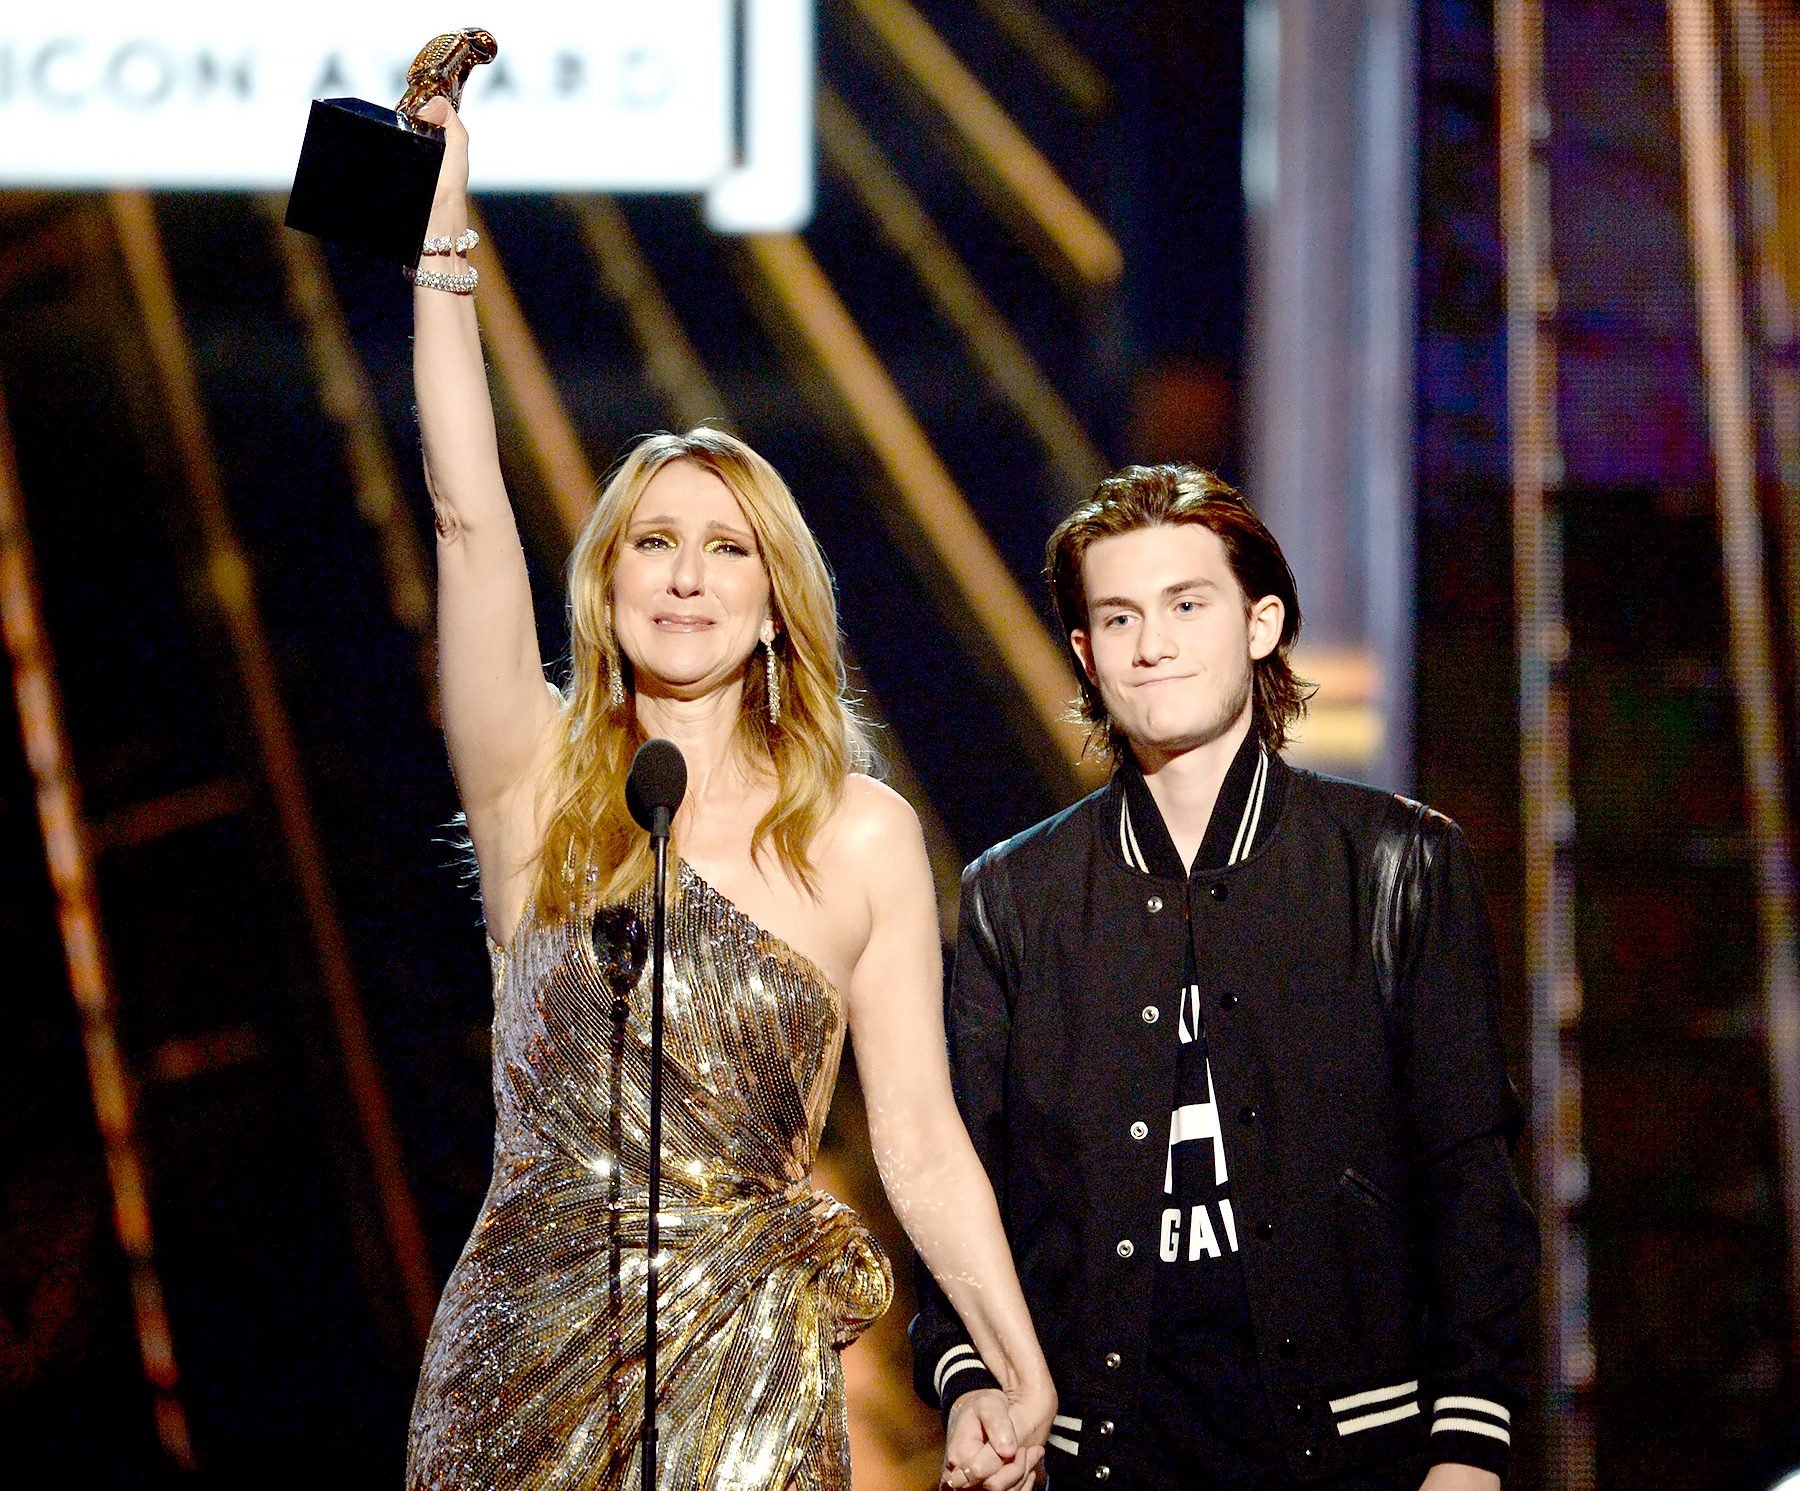 Celine Dion accepts the Billboard Icon-Award from son Rene Charles Angelil onstage during the 2016 Billboard Music Awards.